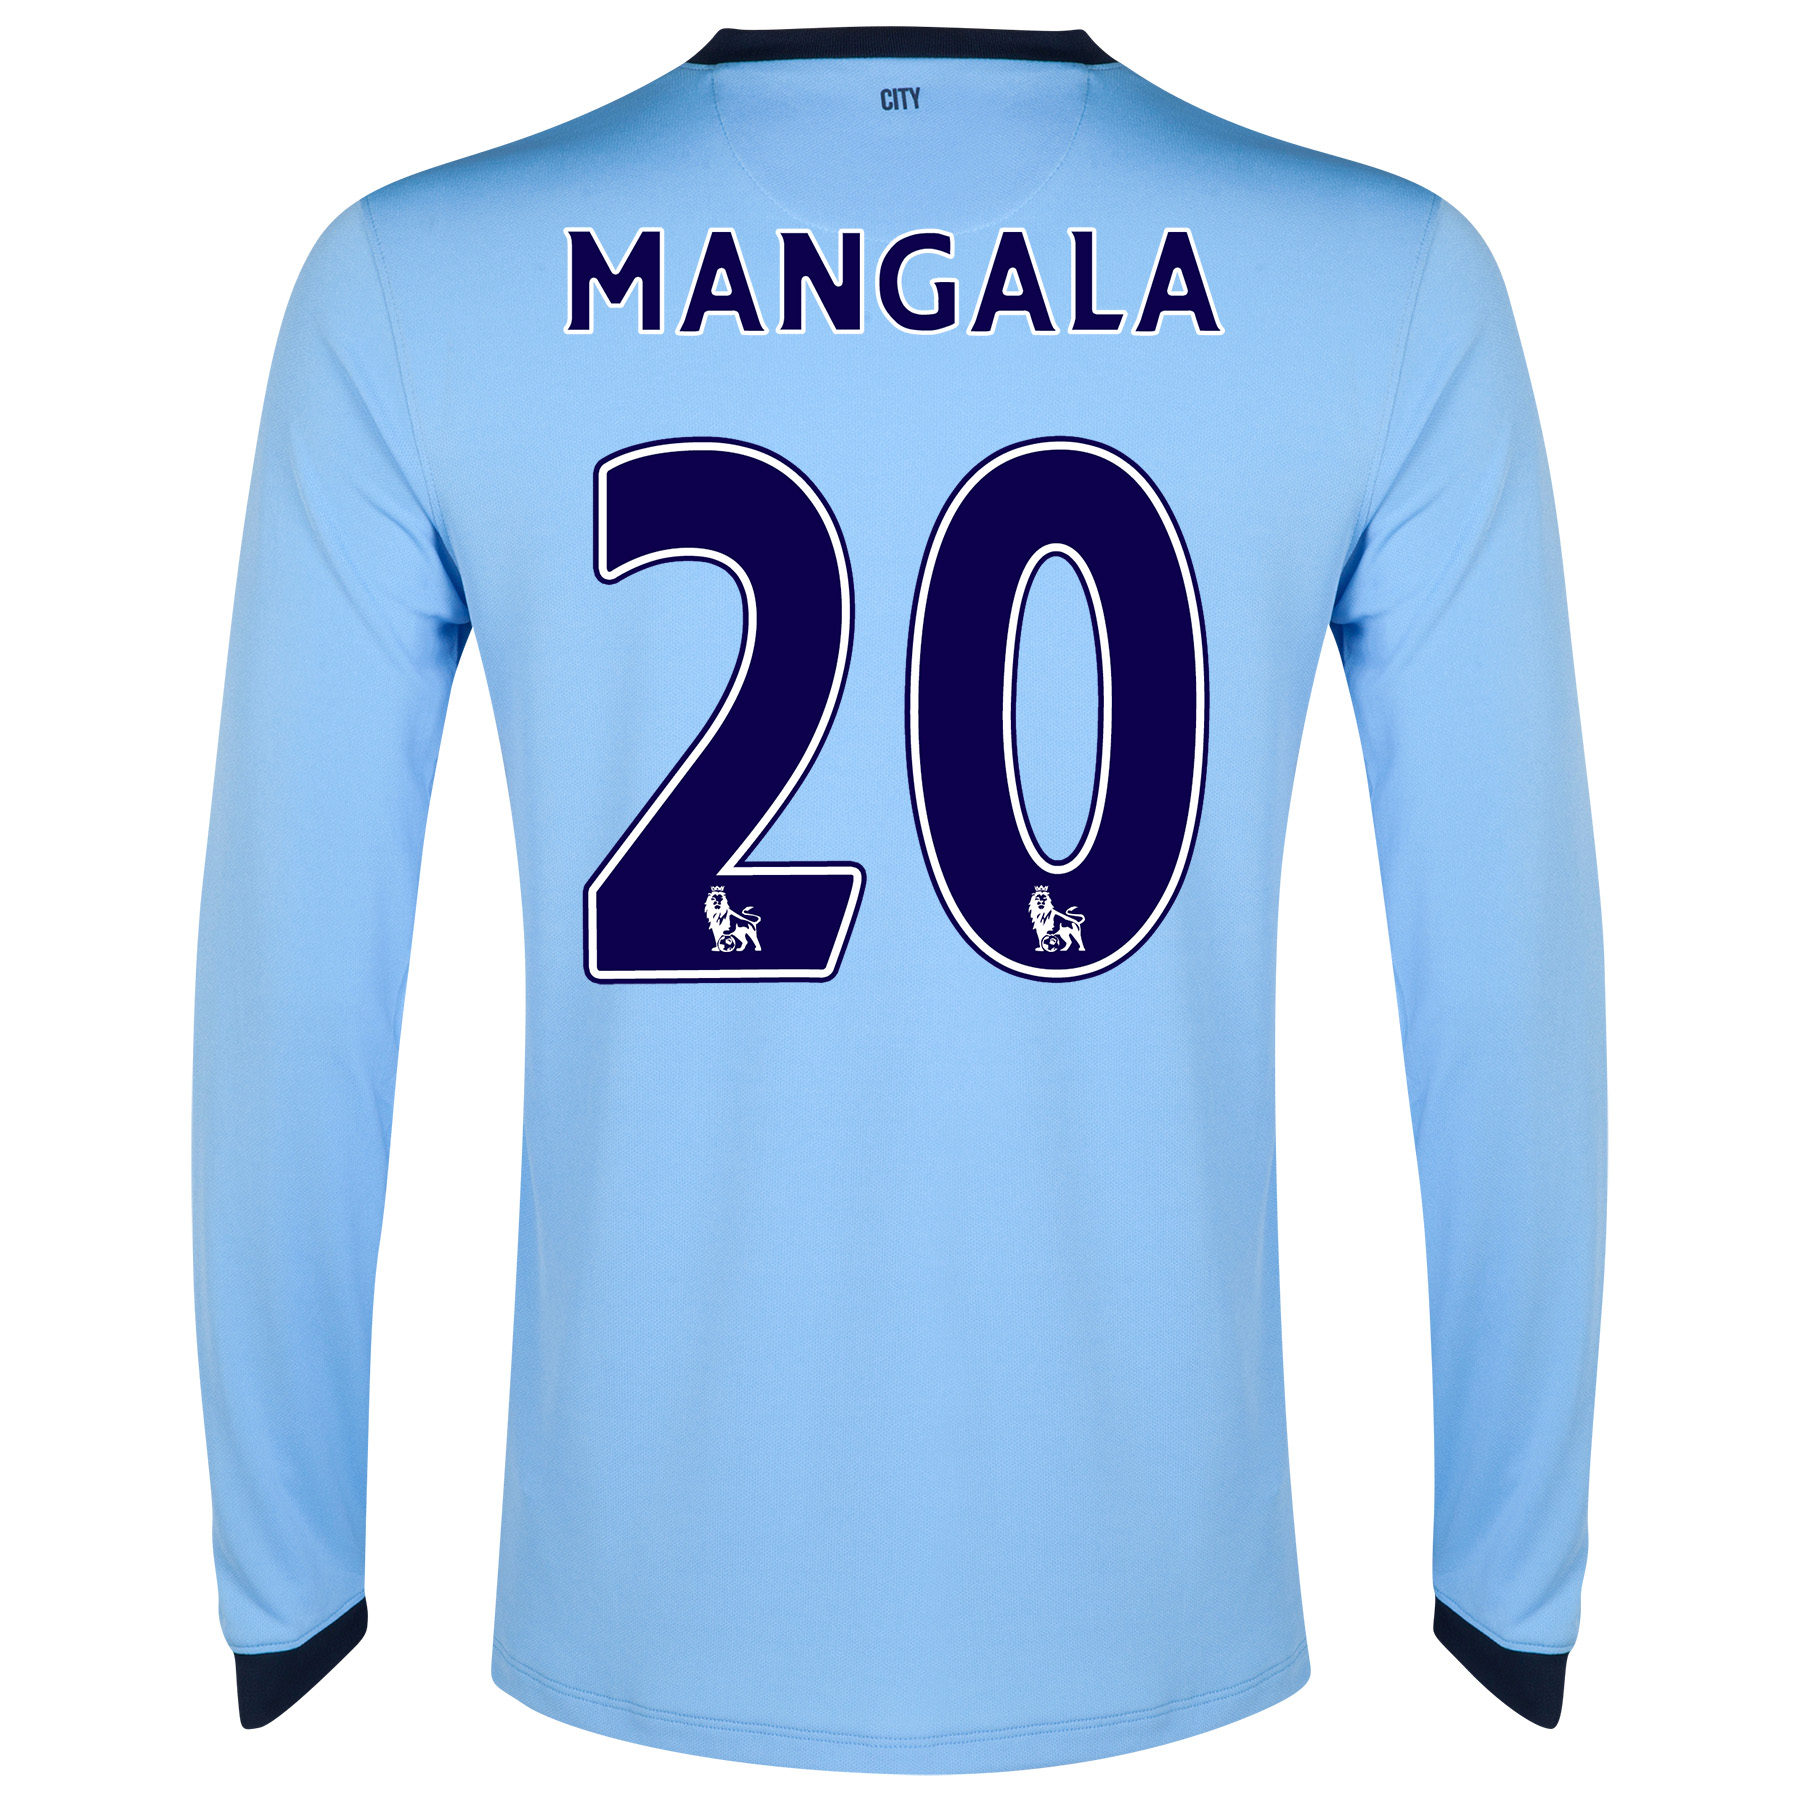 Manchester City Home Shirt 2014/15 - Long Sleeve - Kids Sky Blue with Mangala 20 printing